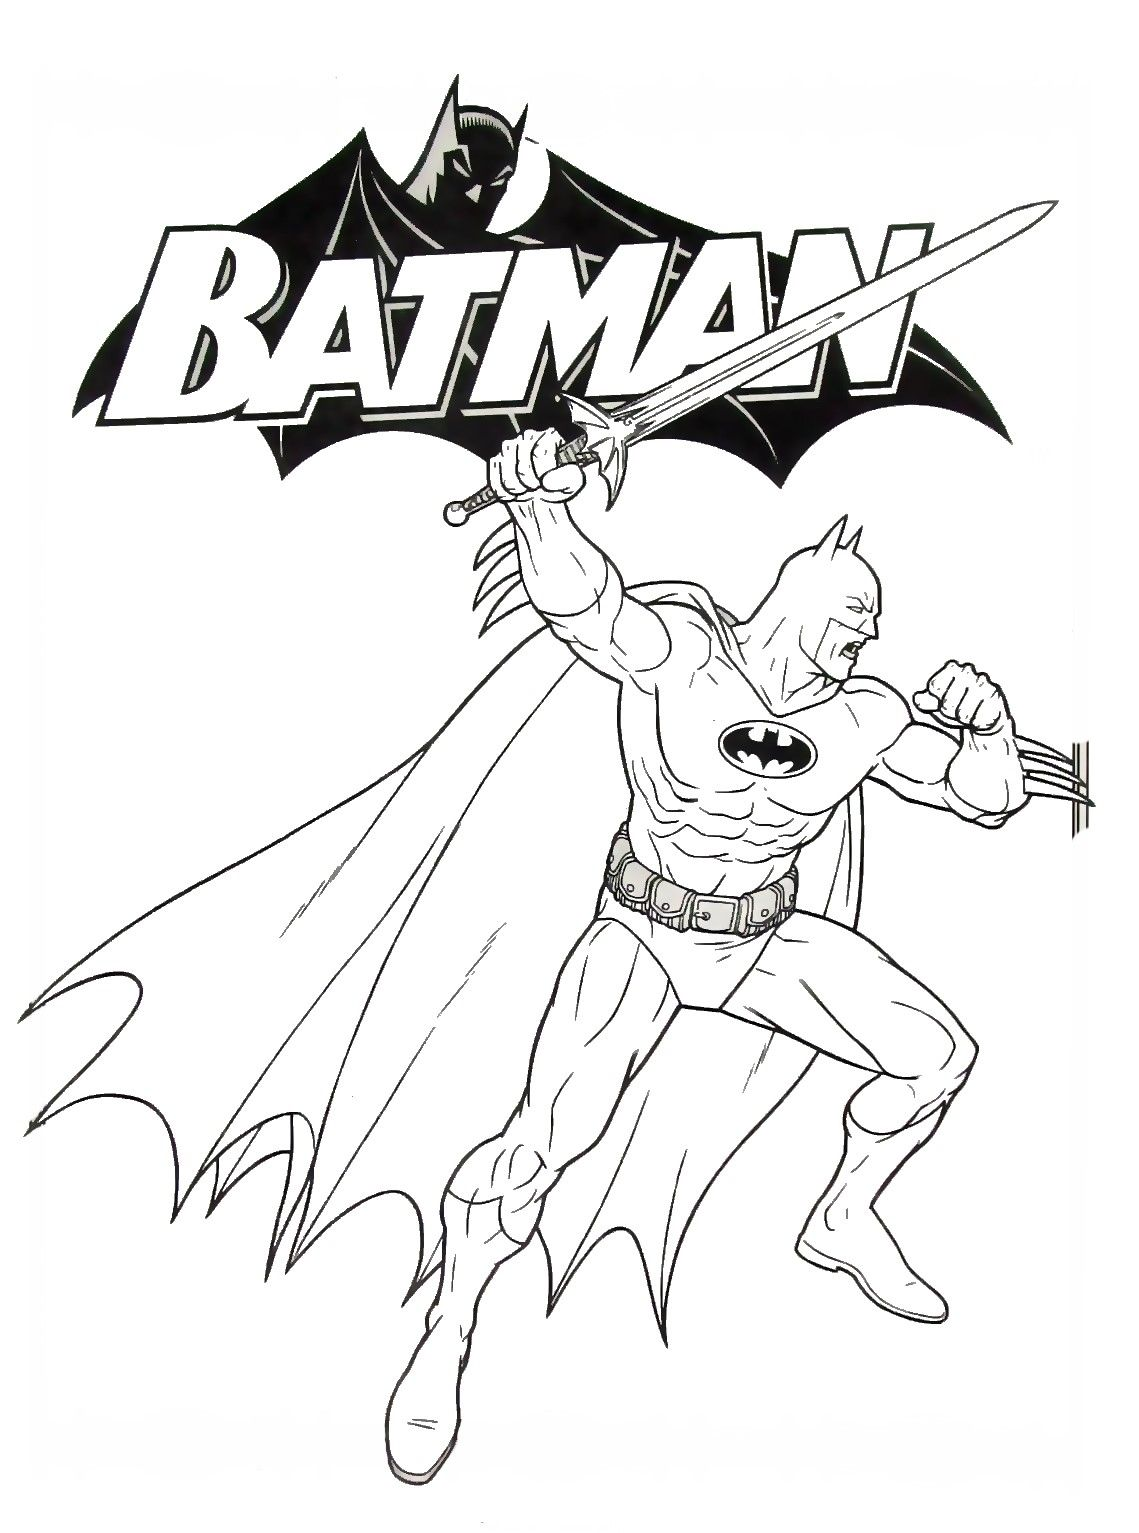 batman with sword coloring book page printable batman coloring